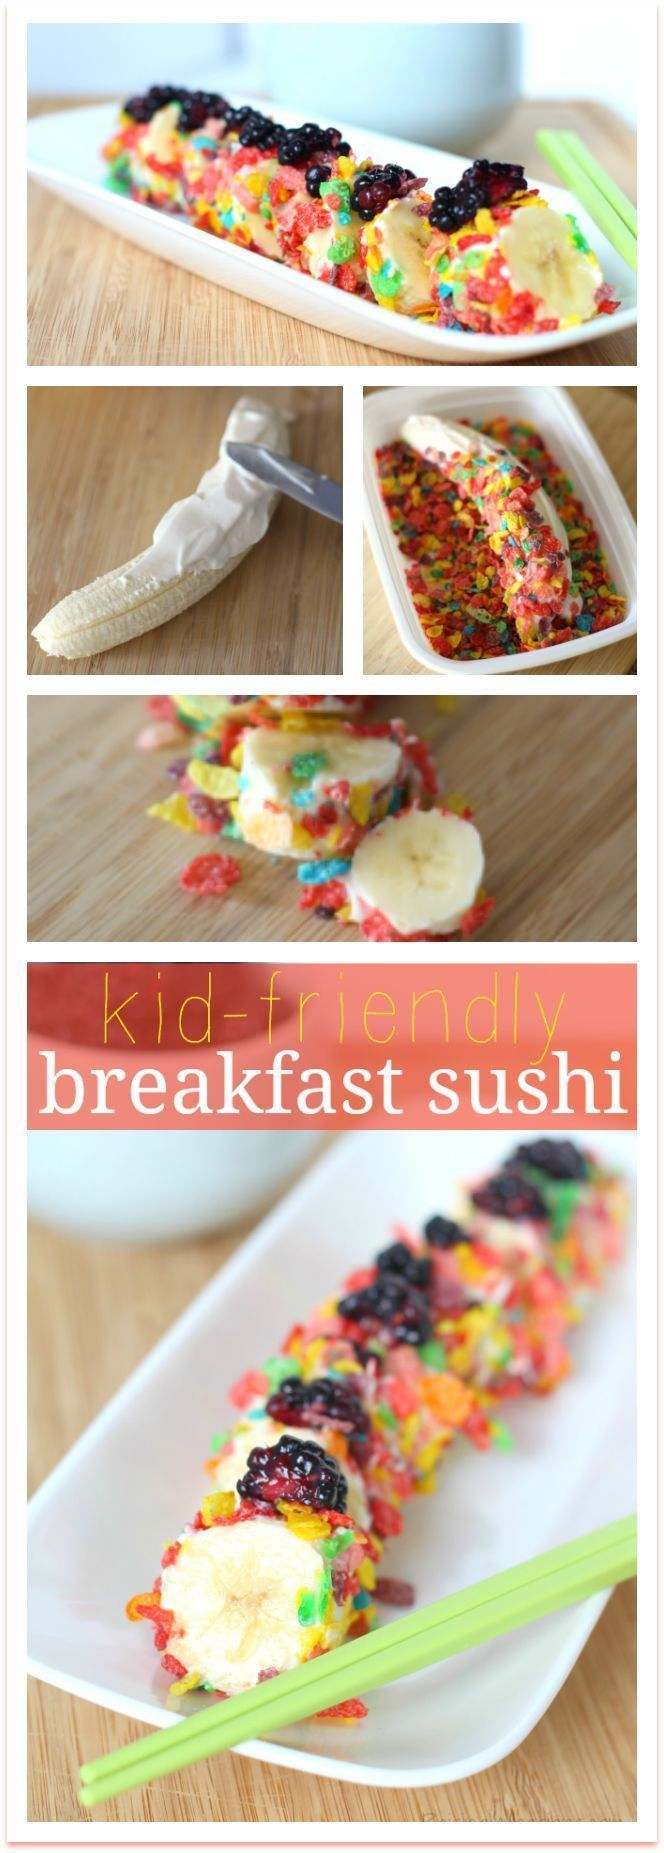 Kids Breakfast Sushi Recipe | Easy & FUN breakfast idea for kids - a perfect kid-friendly back-to-school breakfast too! #PebblesCereal #ad